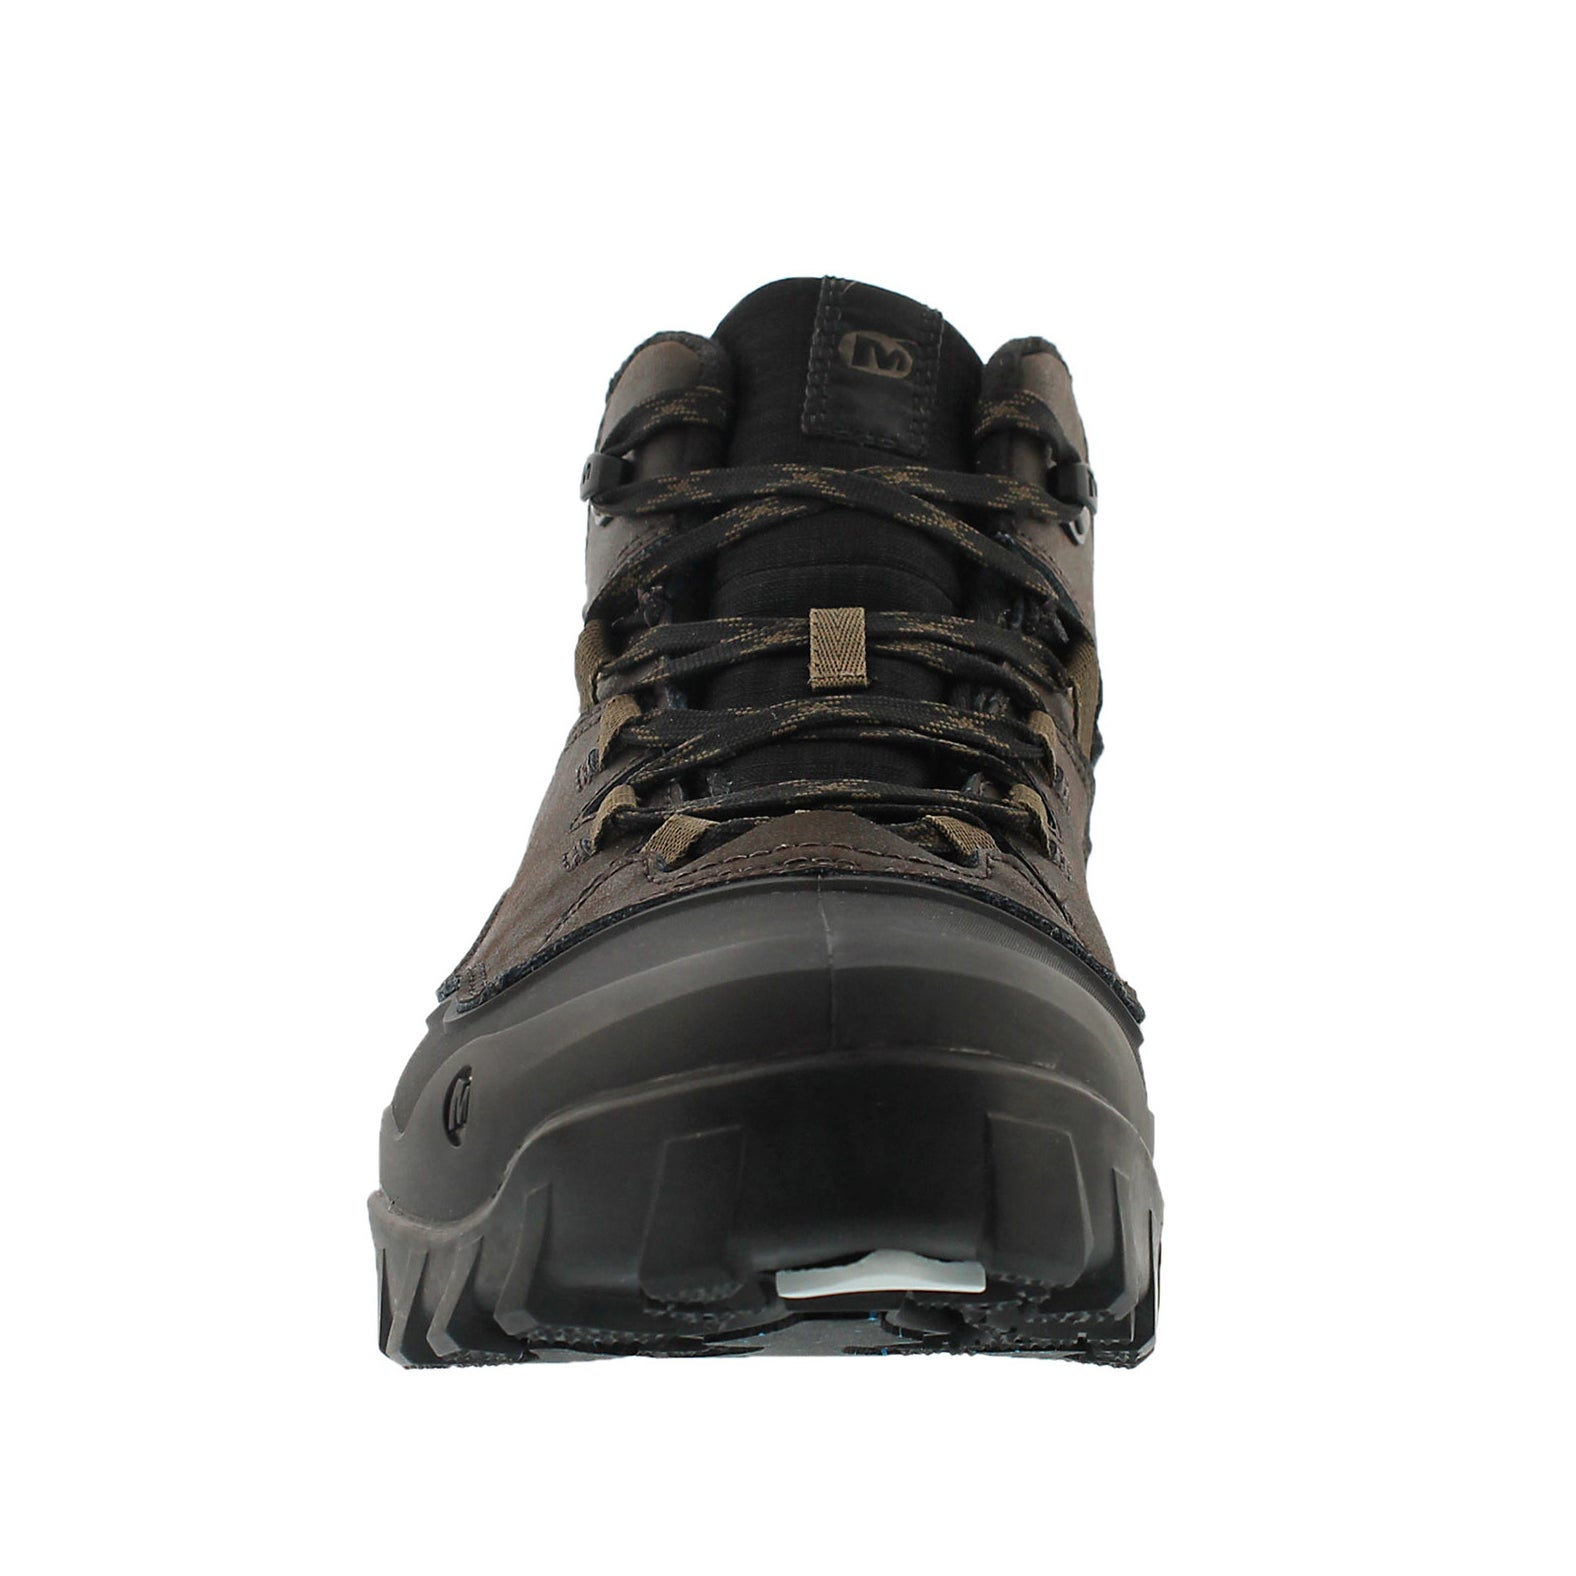 Mns Overlook 6 Ice ash hiking boot